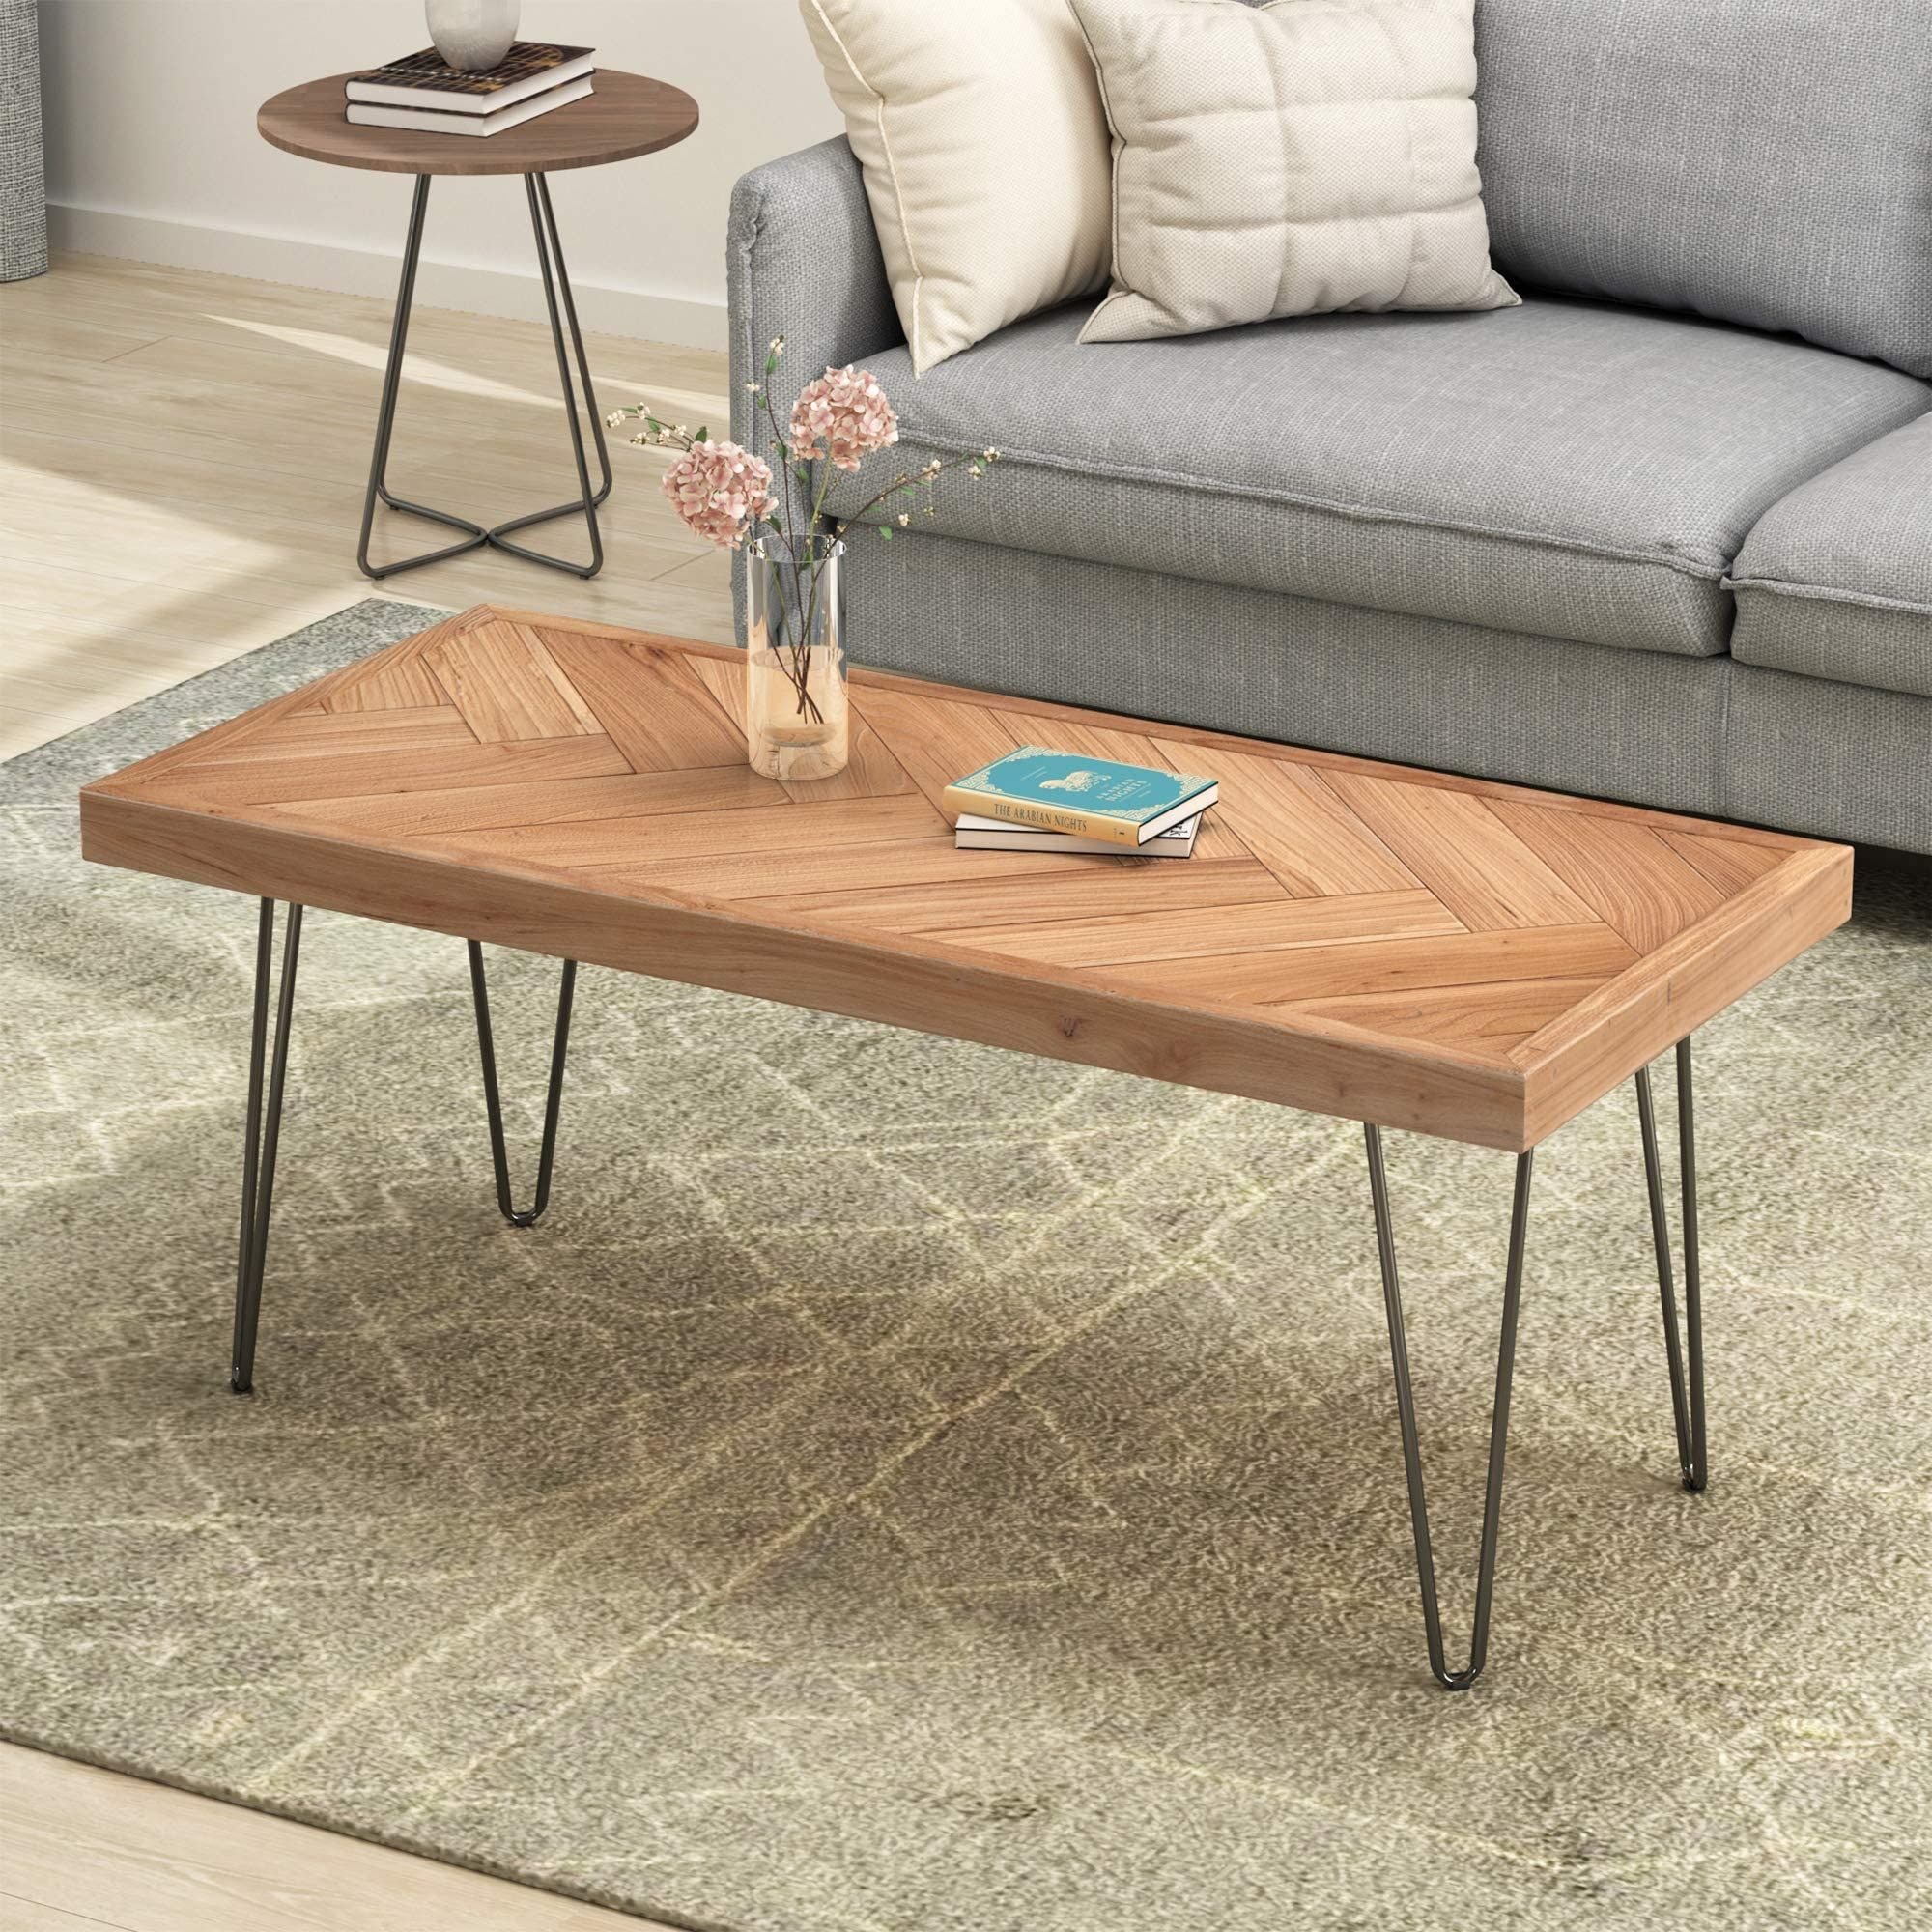 Amazon Com P Purlove Industrial Wood Coffee Table Nature Cocktail Table For Living Roo Modern Wood Coffee Table Coffee Table Wood Cocktail Tables Living Room [ 2000 x 2000 Pixel ]